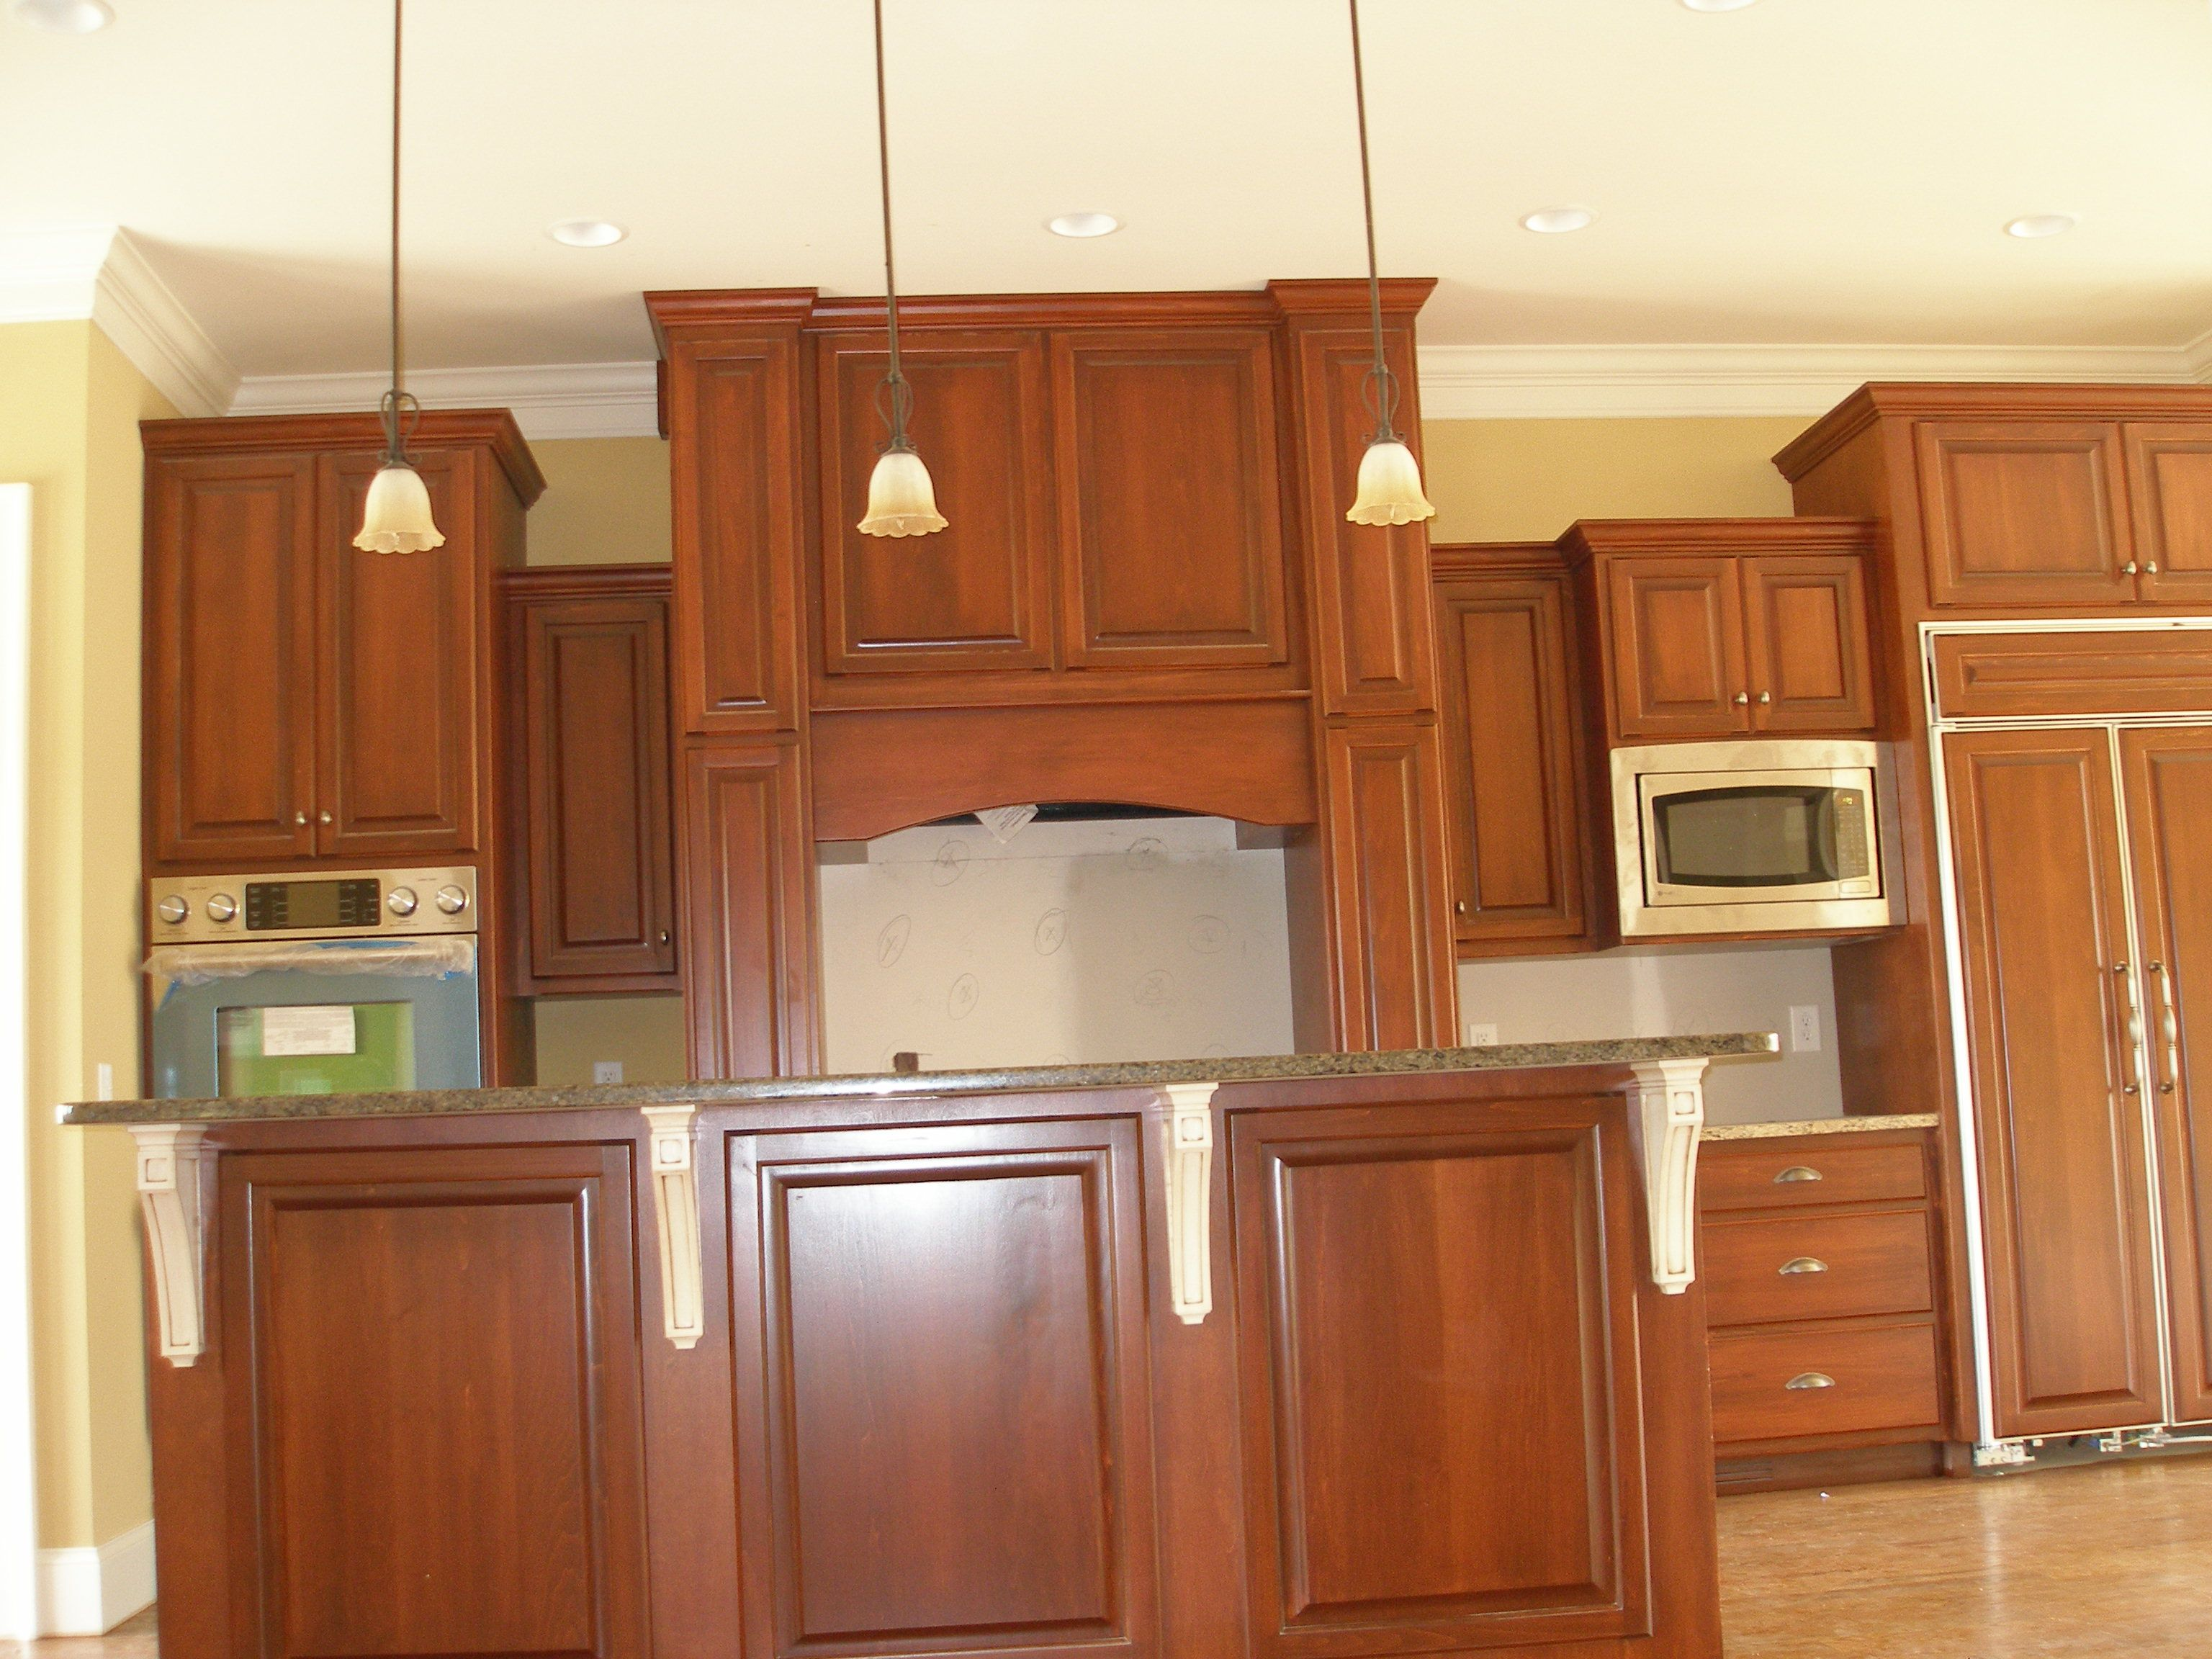 Merveilleux Kitchen Cabinets | Custom Cabinets Atlanta 678 608 3352 McDonough Ga |  Kitchen Cabinets .